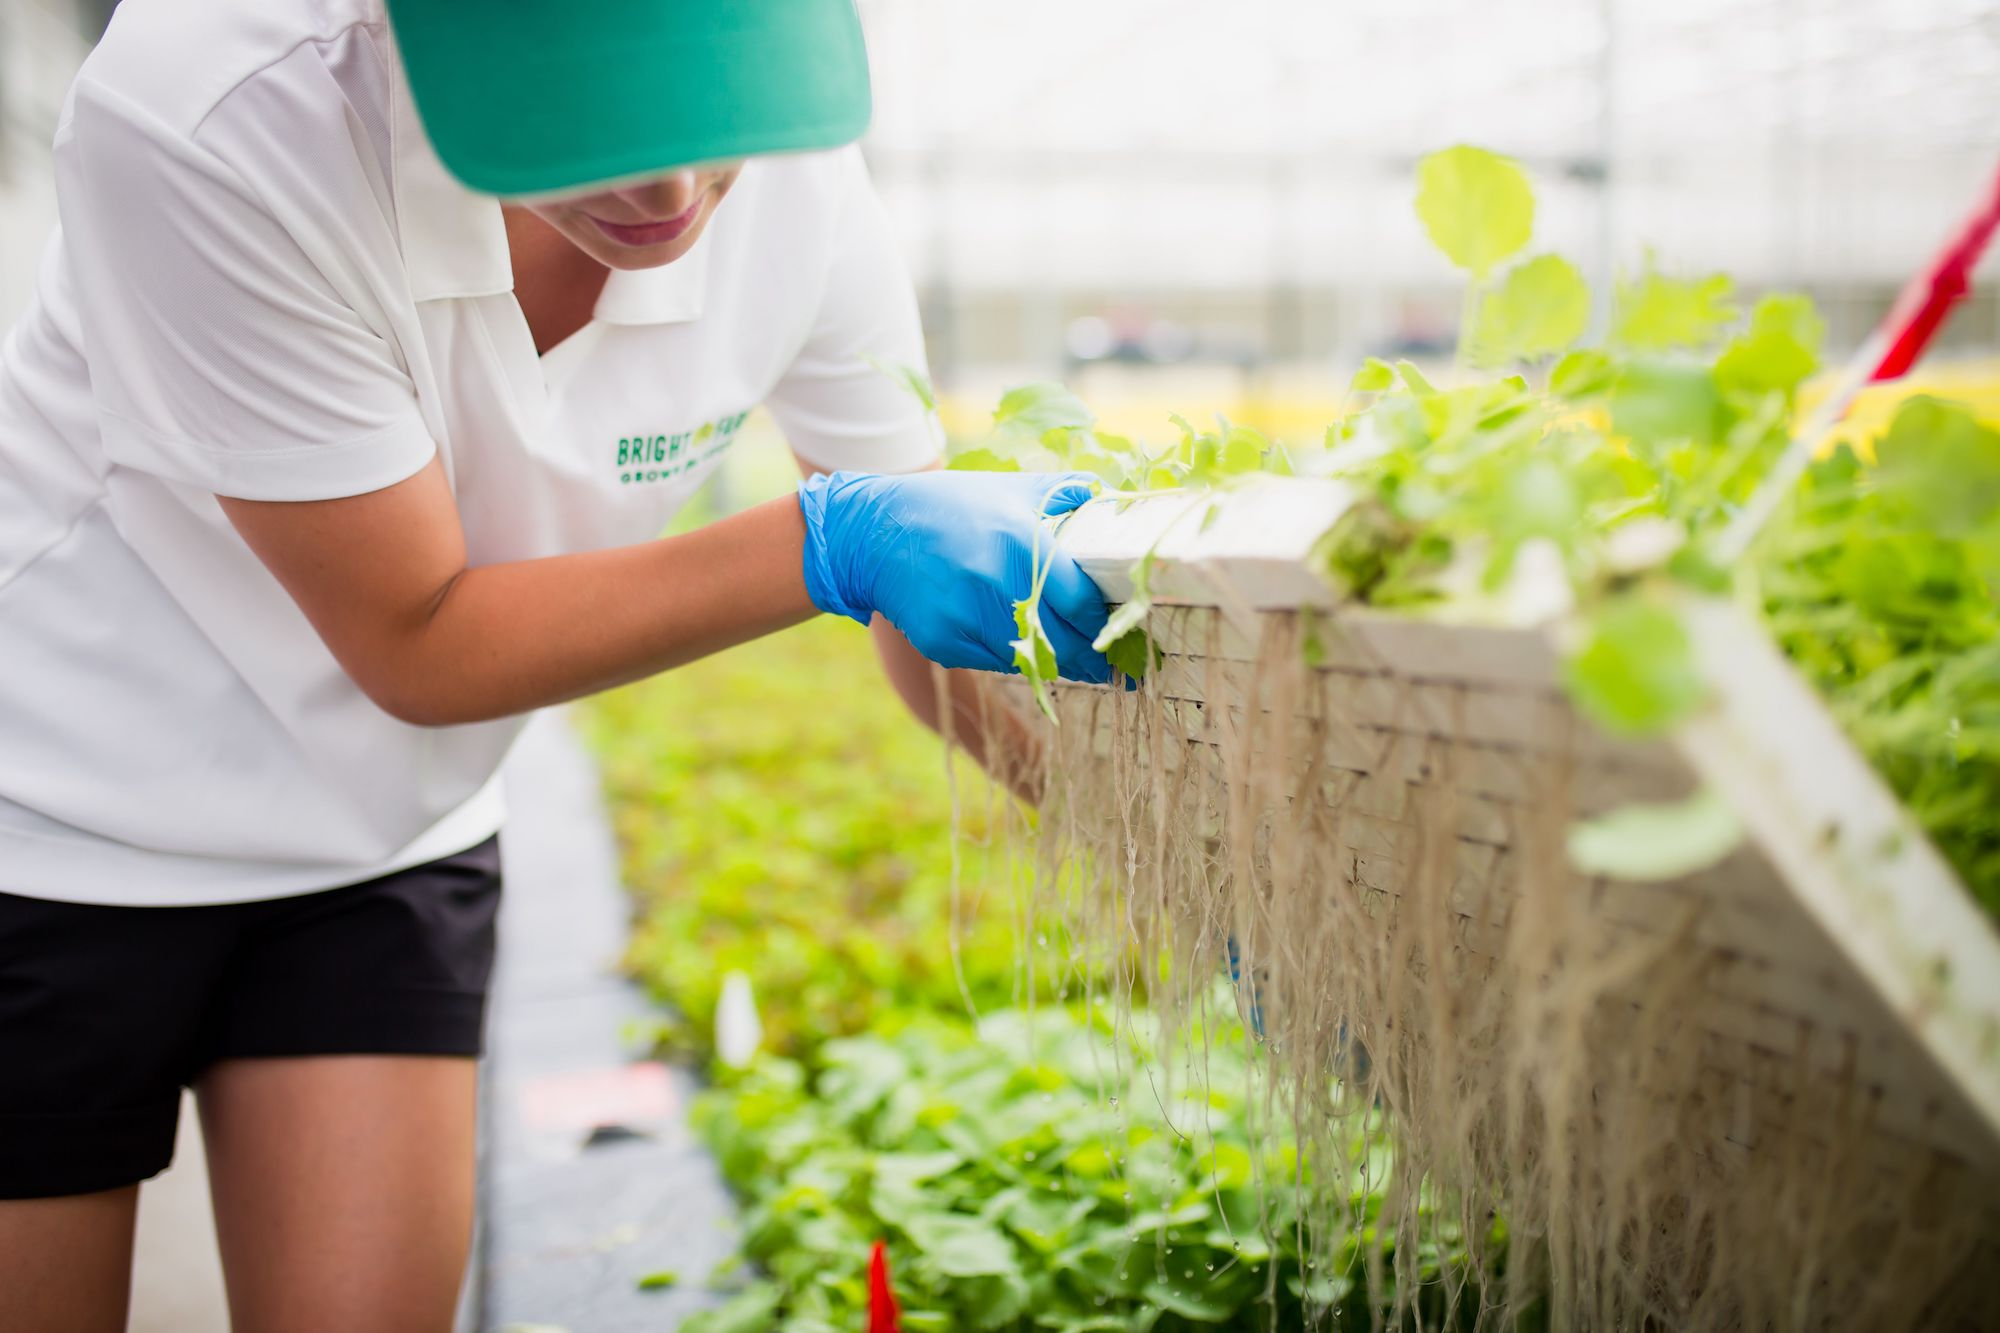 Denise DeRue | Head Grower | Farmer Working Checking Crops and Roots in Hydroponic Greenhouse | Lettuce | CEA | Grown Indoors